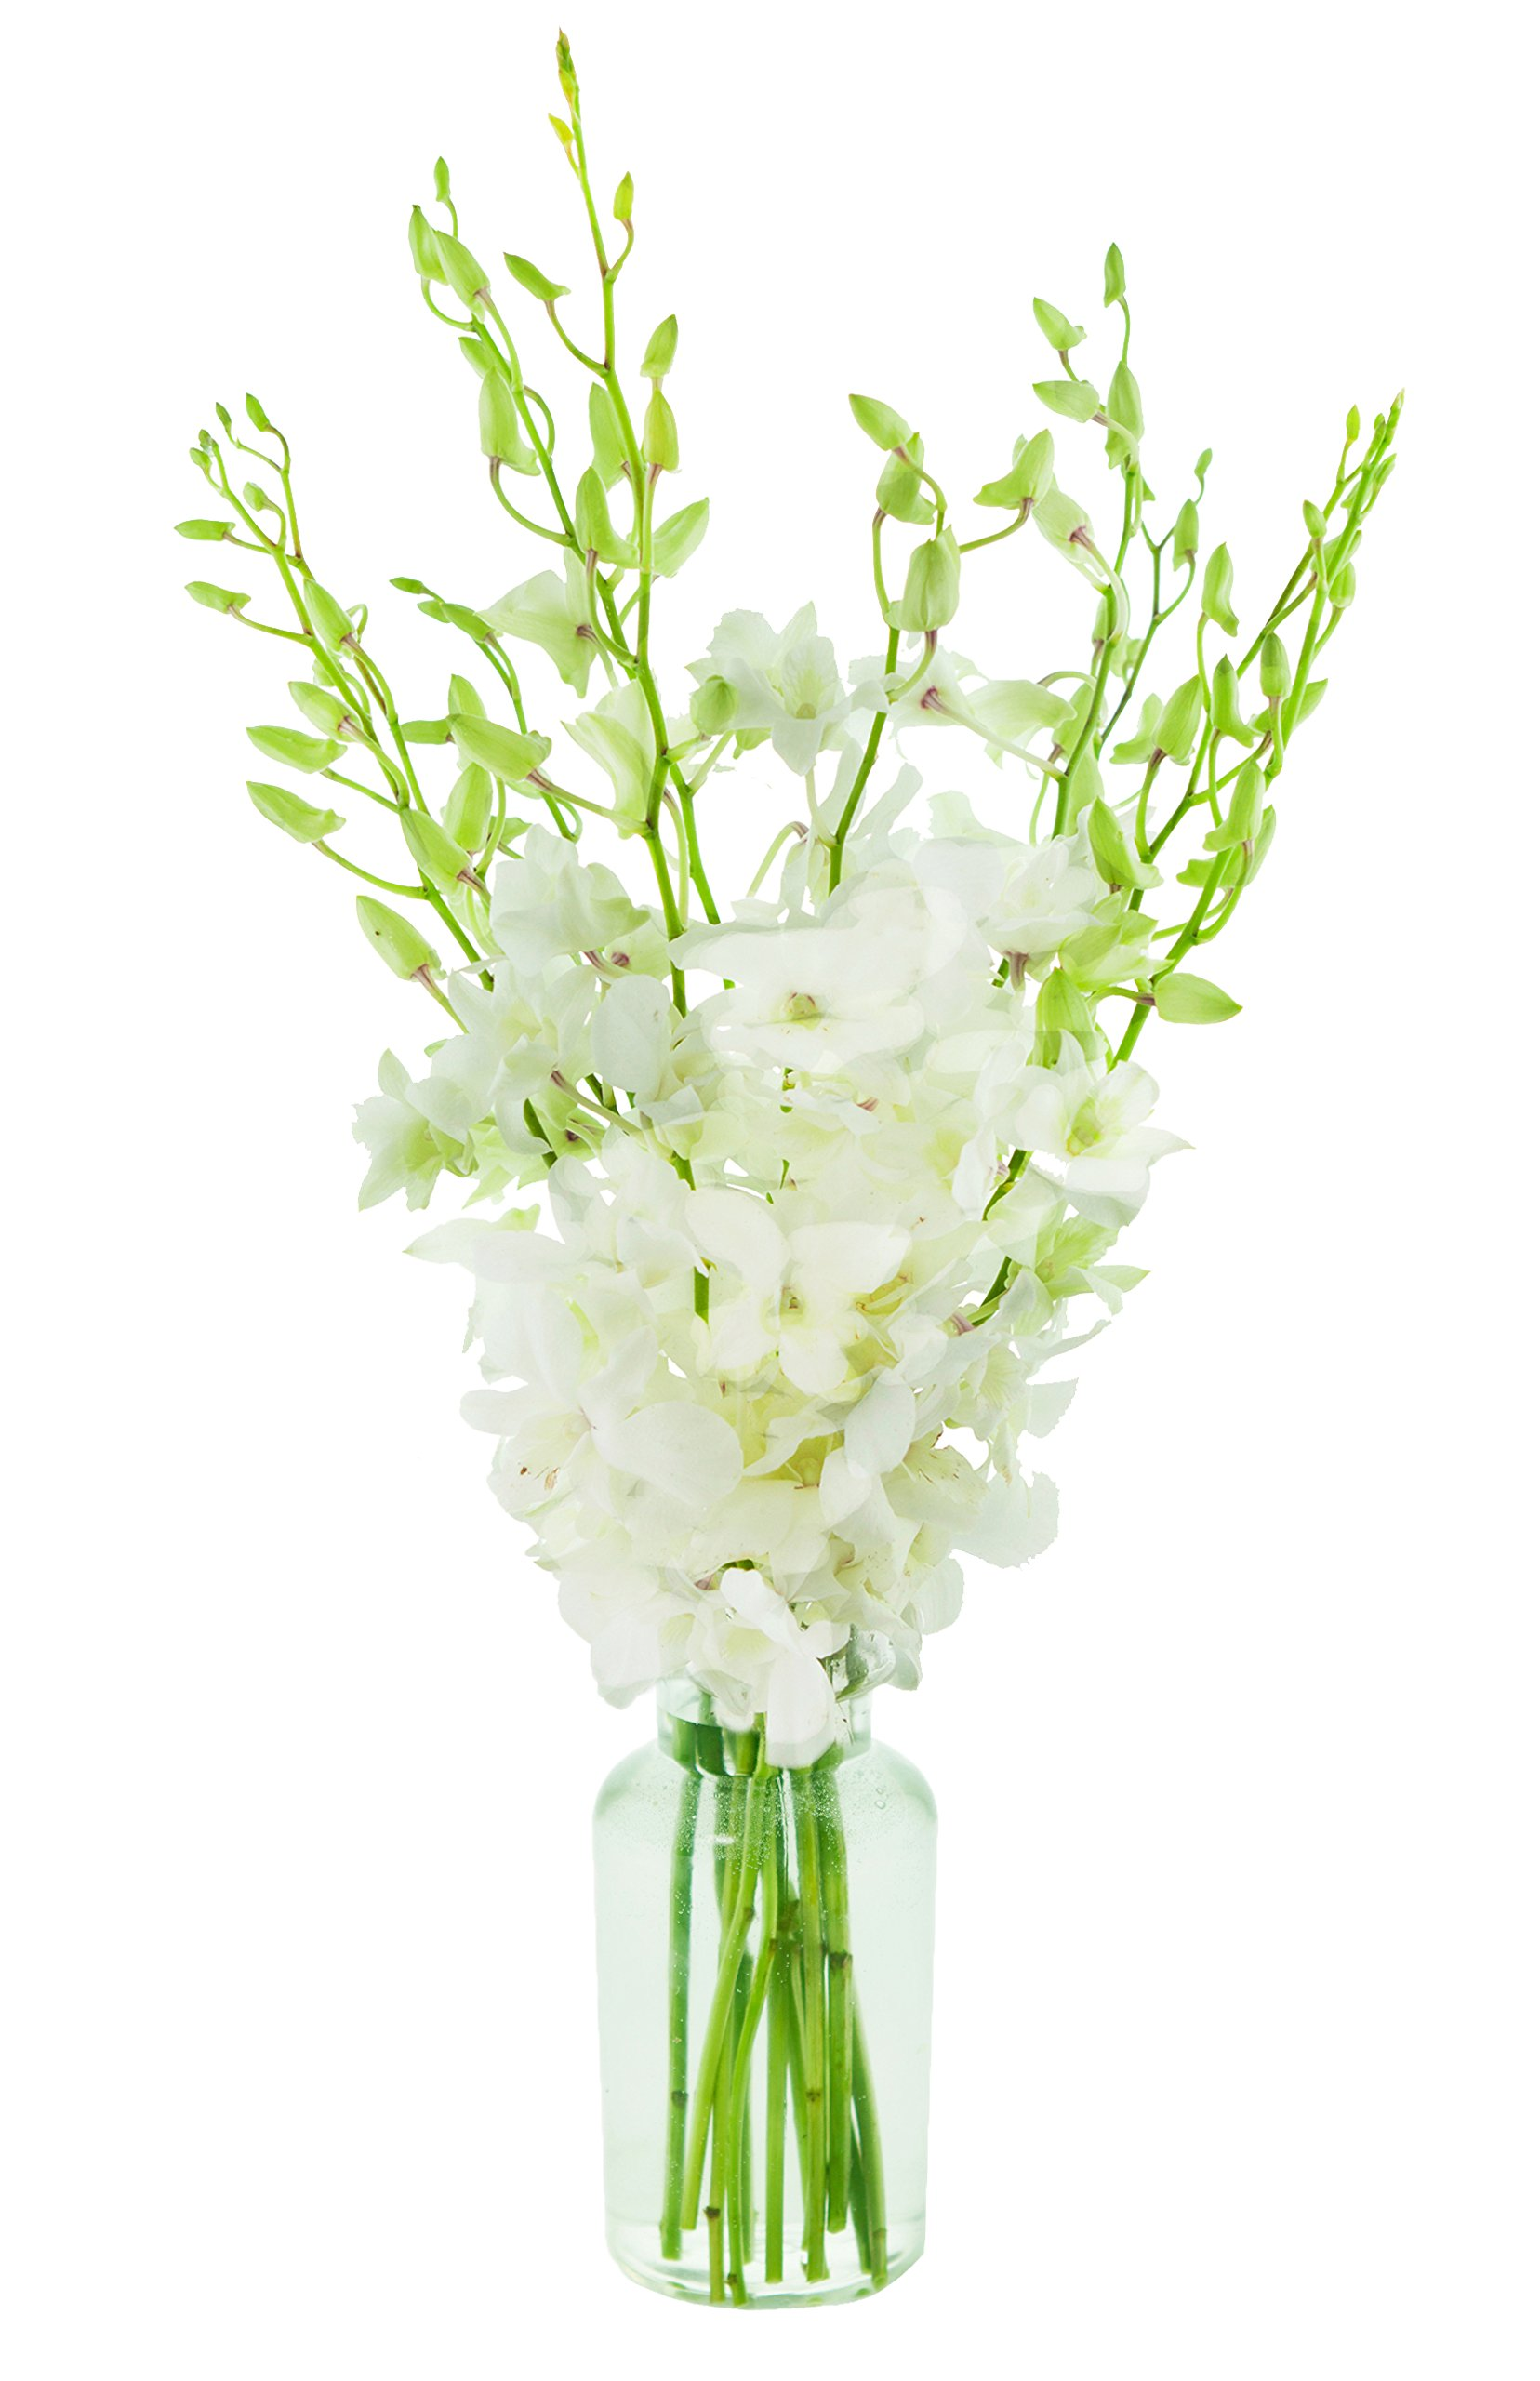 KaBloom Exotic Perla White Orchid Bouquet of White Orchids from Thailand with Vase by KaBloom